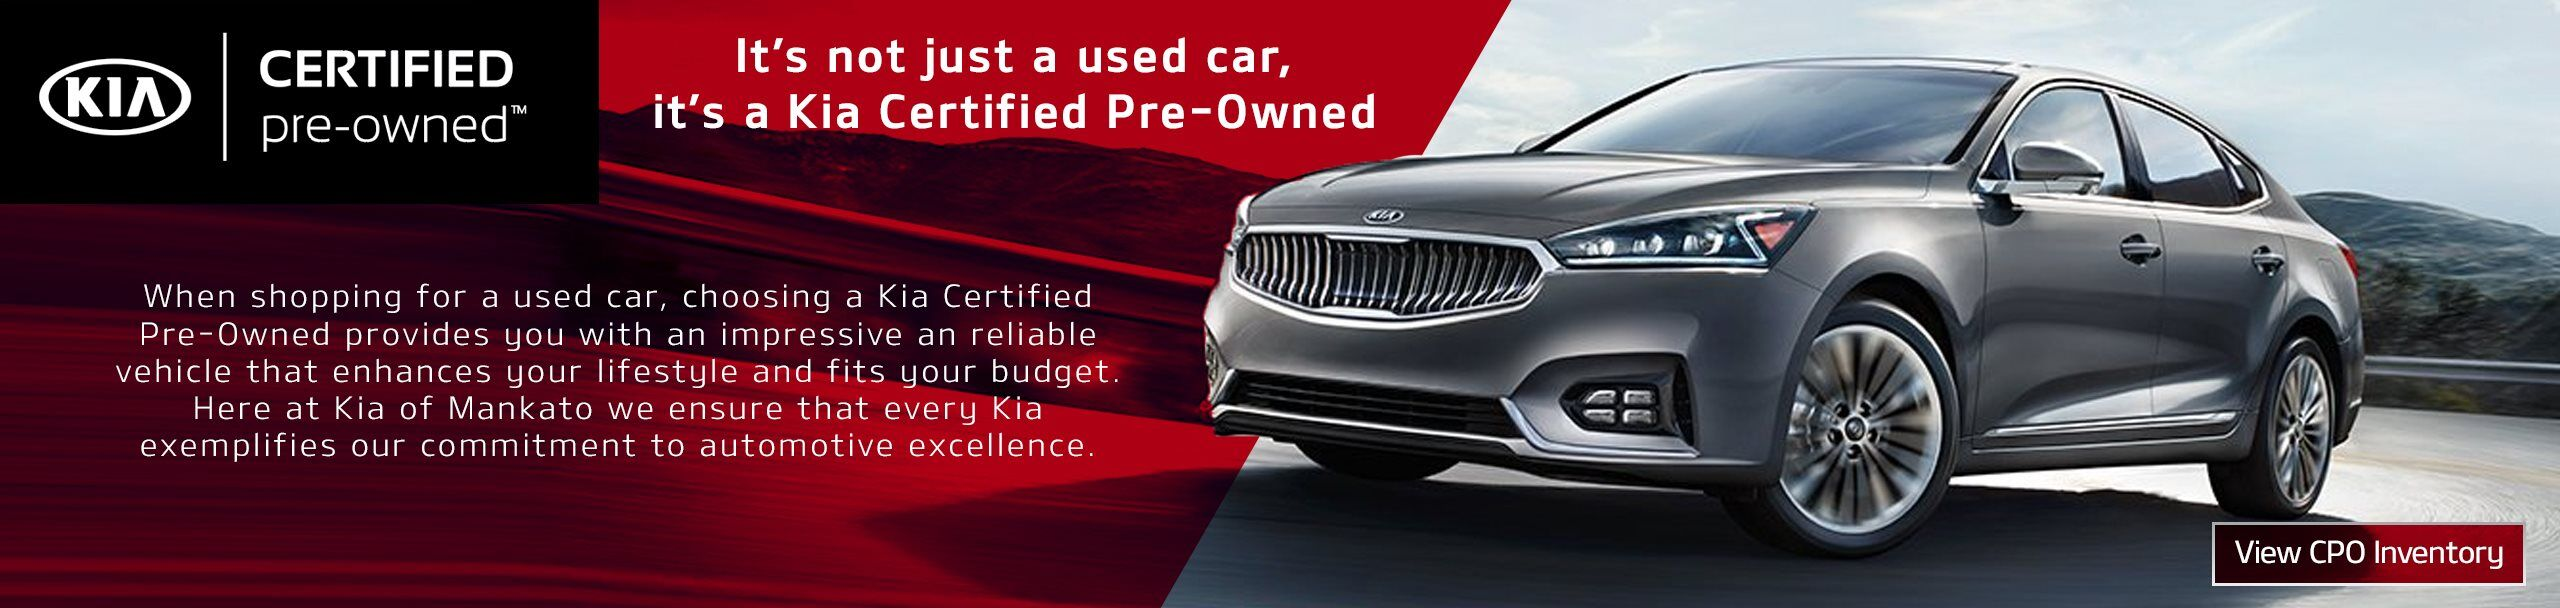 Certified Pre-Owned Kia Vehicles Mankato MN